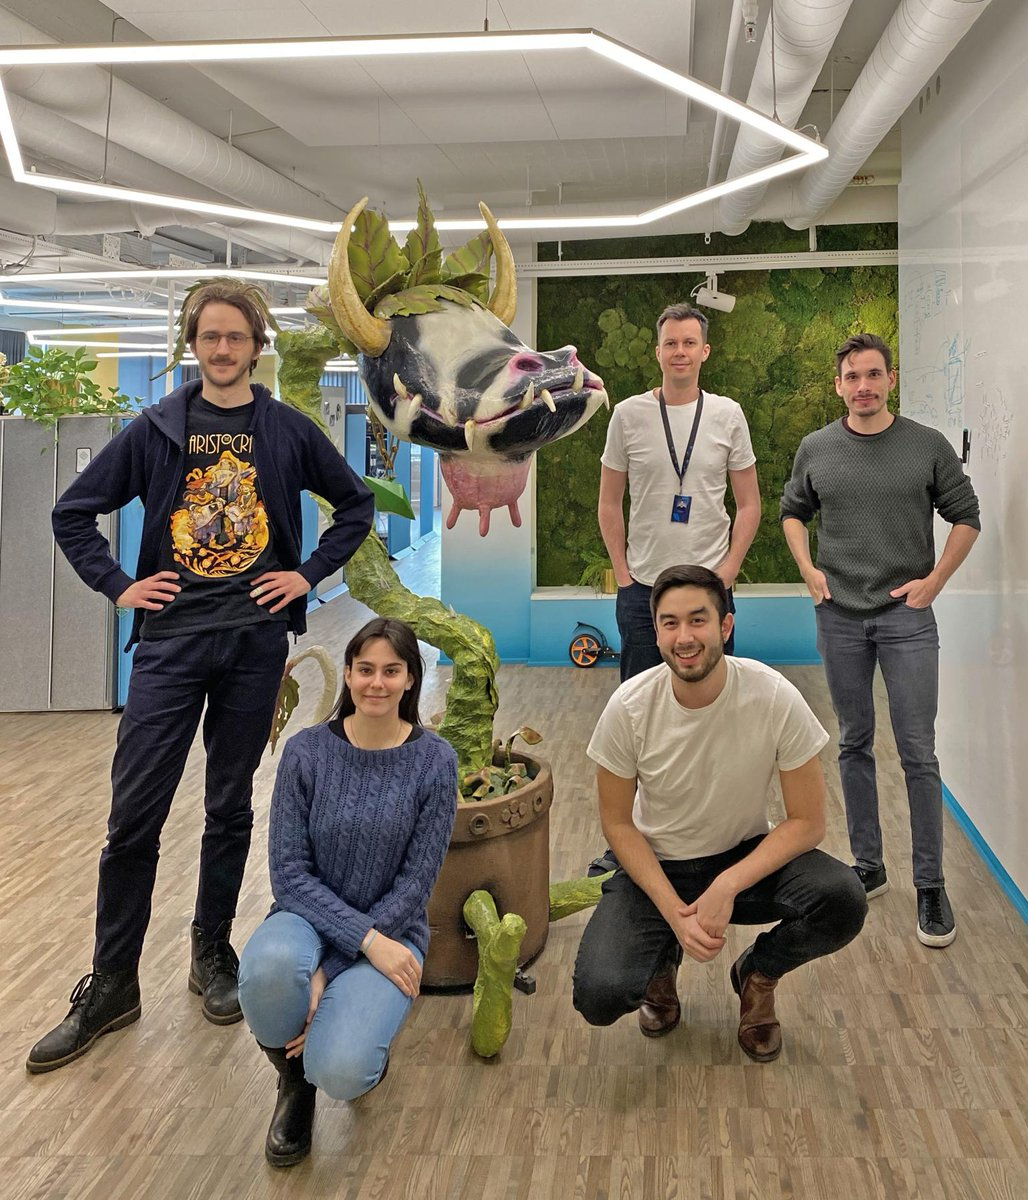 Parts of our Deep Learning team are welcoming our newest Stockholm office team member - Let us introduce....  The Cow Plant from The Sims!  #TheSims20thBirthday #WeAreSEED #WeAreEA #DeepLearning #MachineLearning